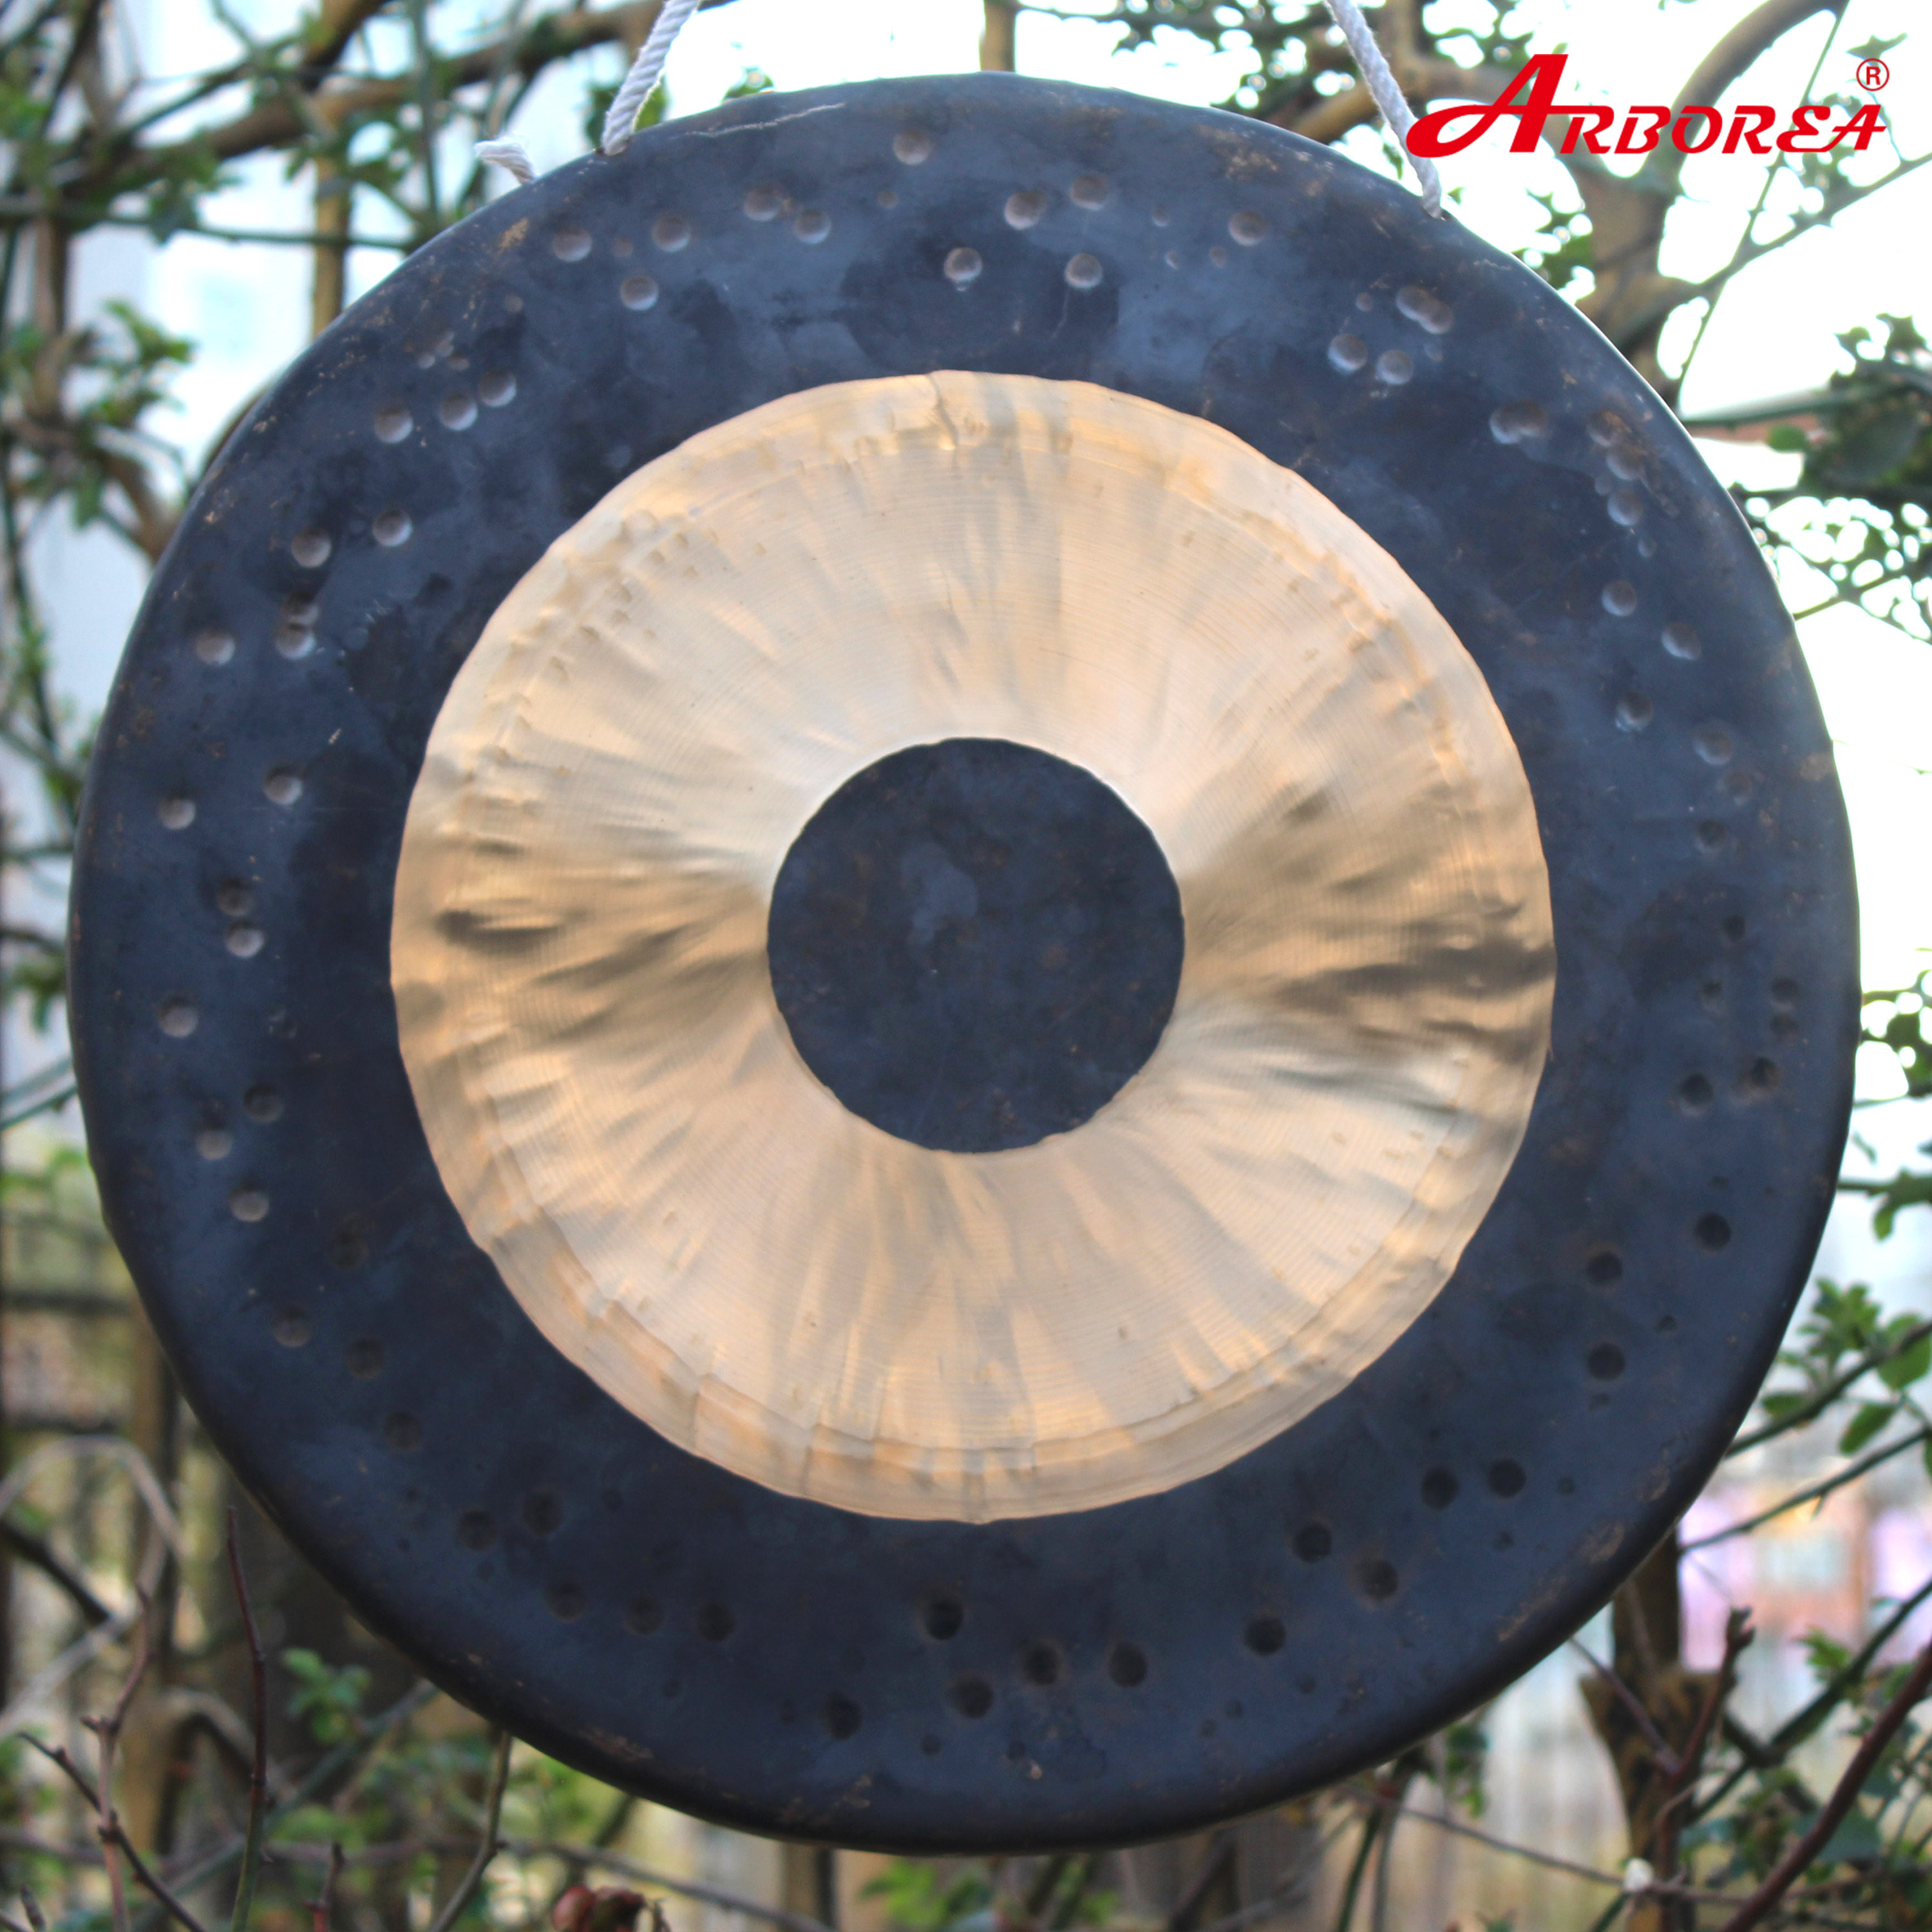 18 Inch 45cm Chau Gong The 100% Handmade Chinese Chao Gong With 1 Free Mallet(without Stand)